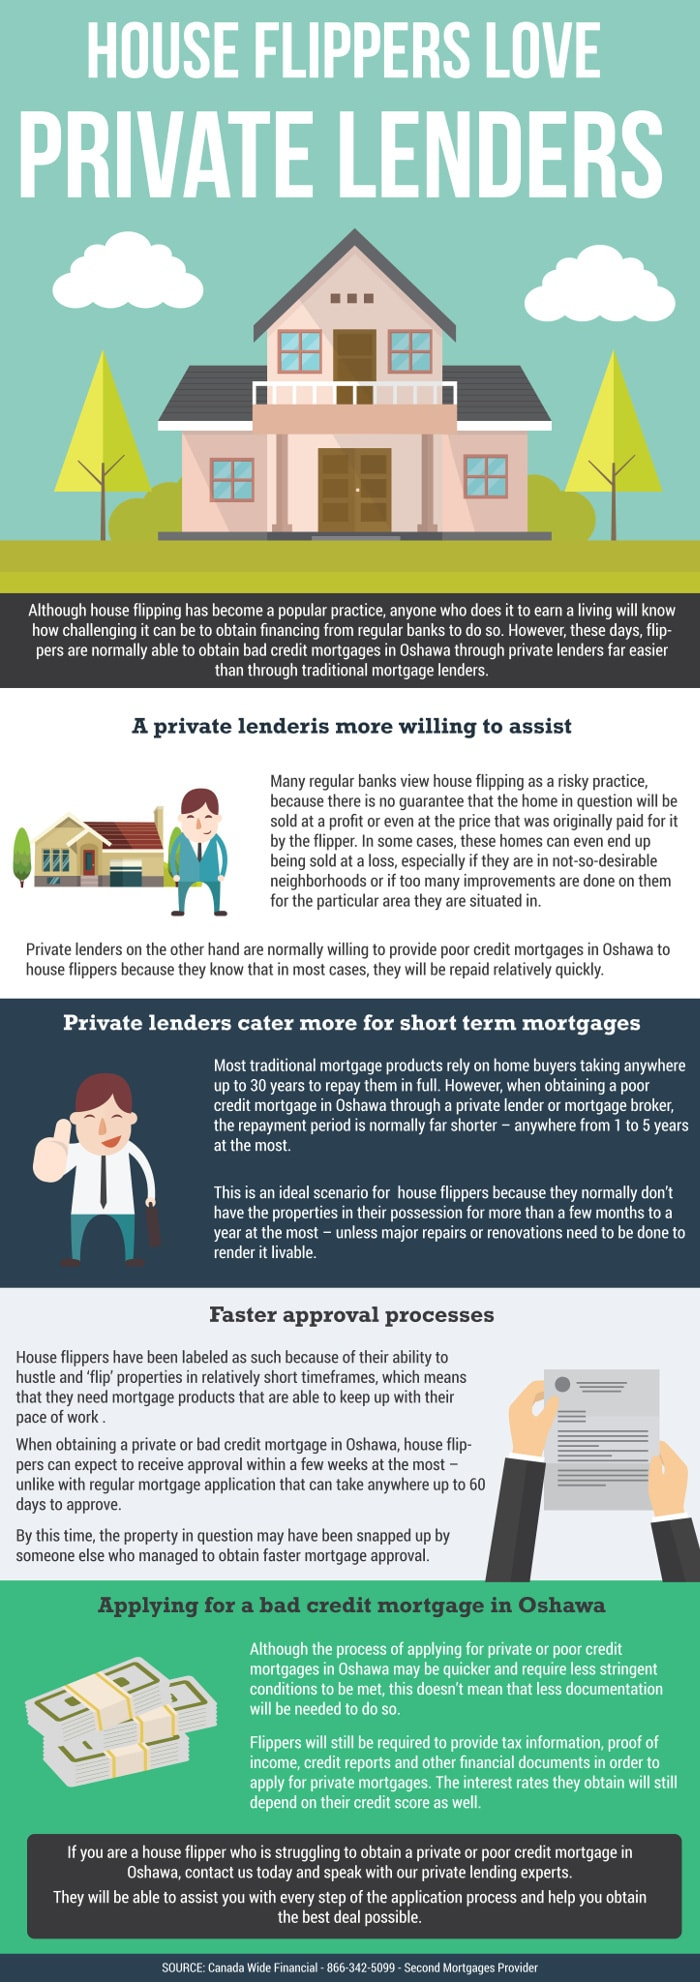 House Flippers Love Private Lenders – Here's Why!